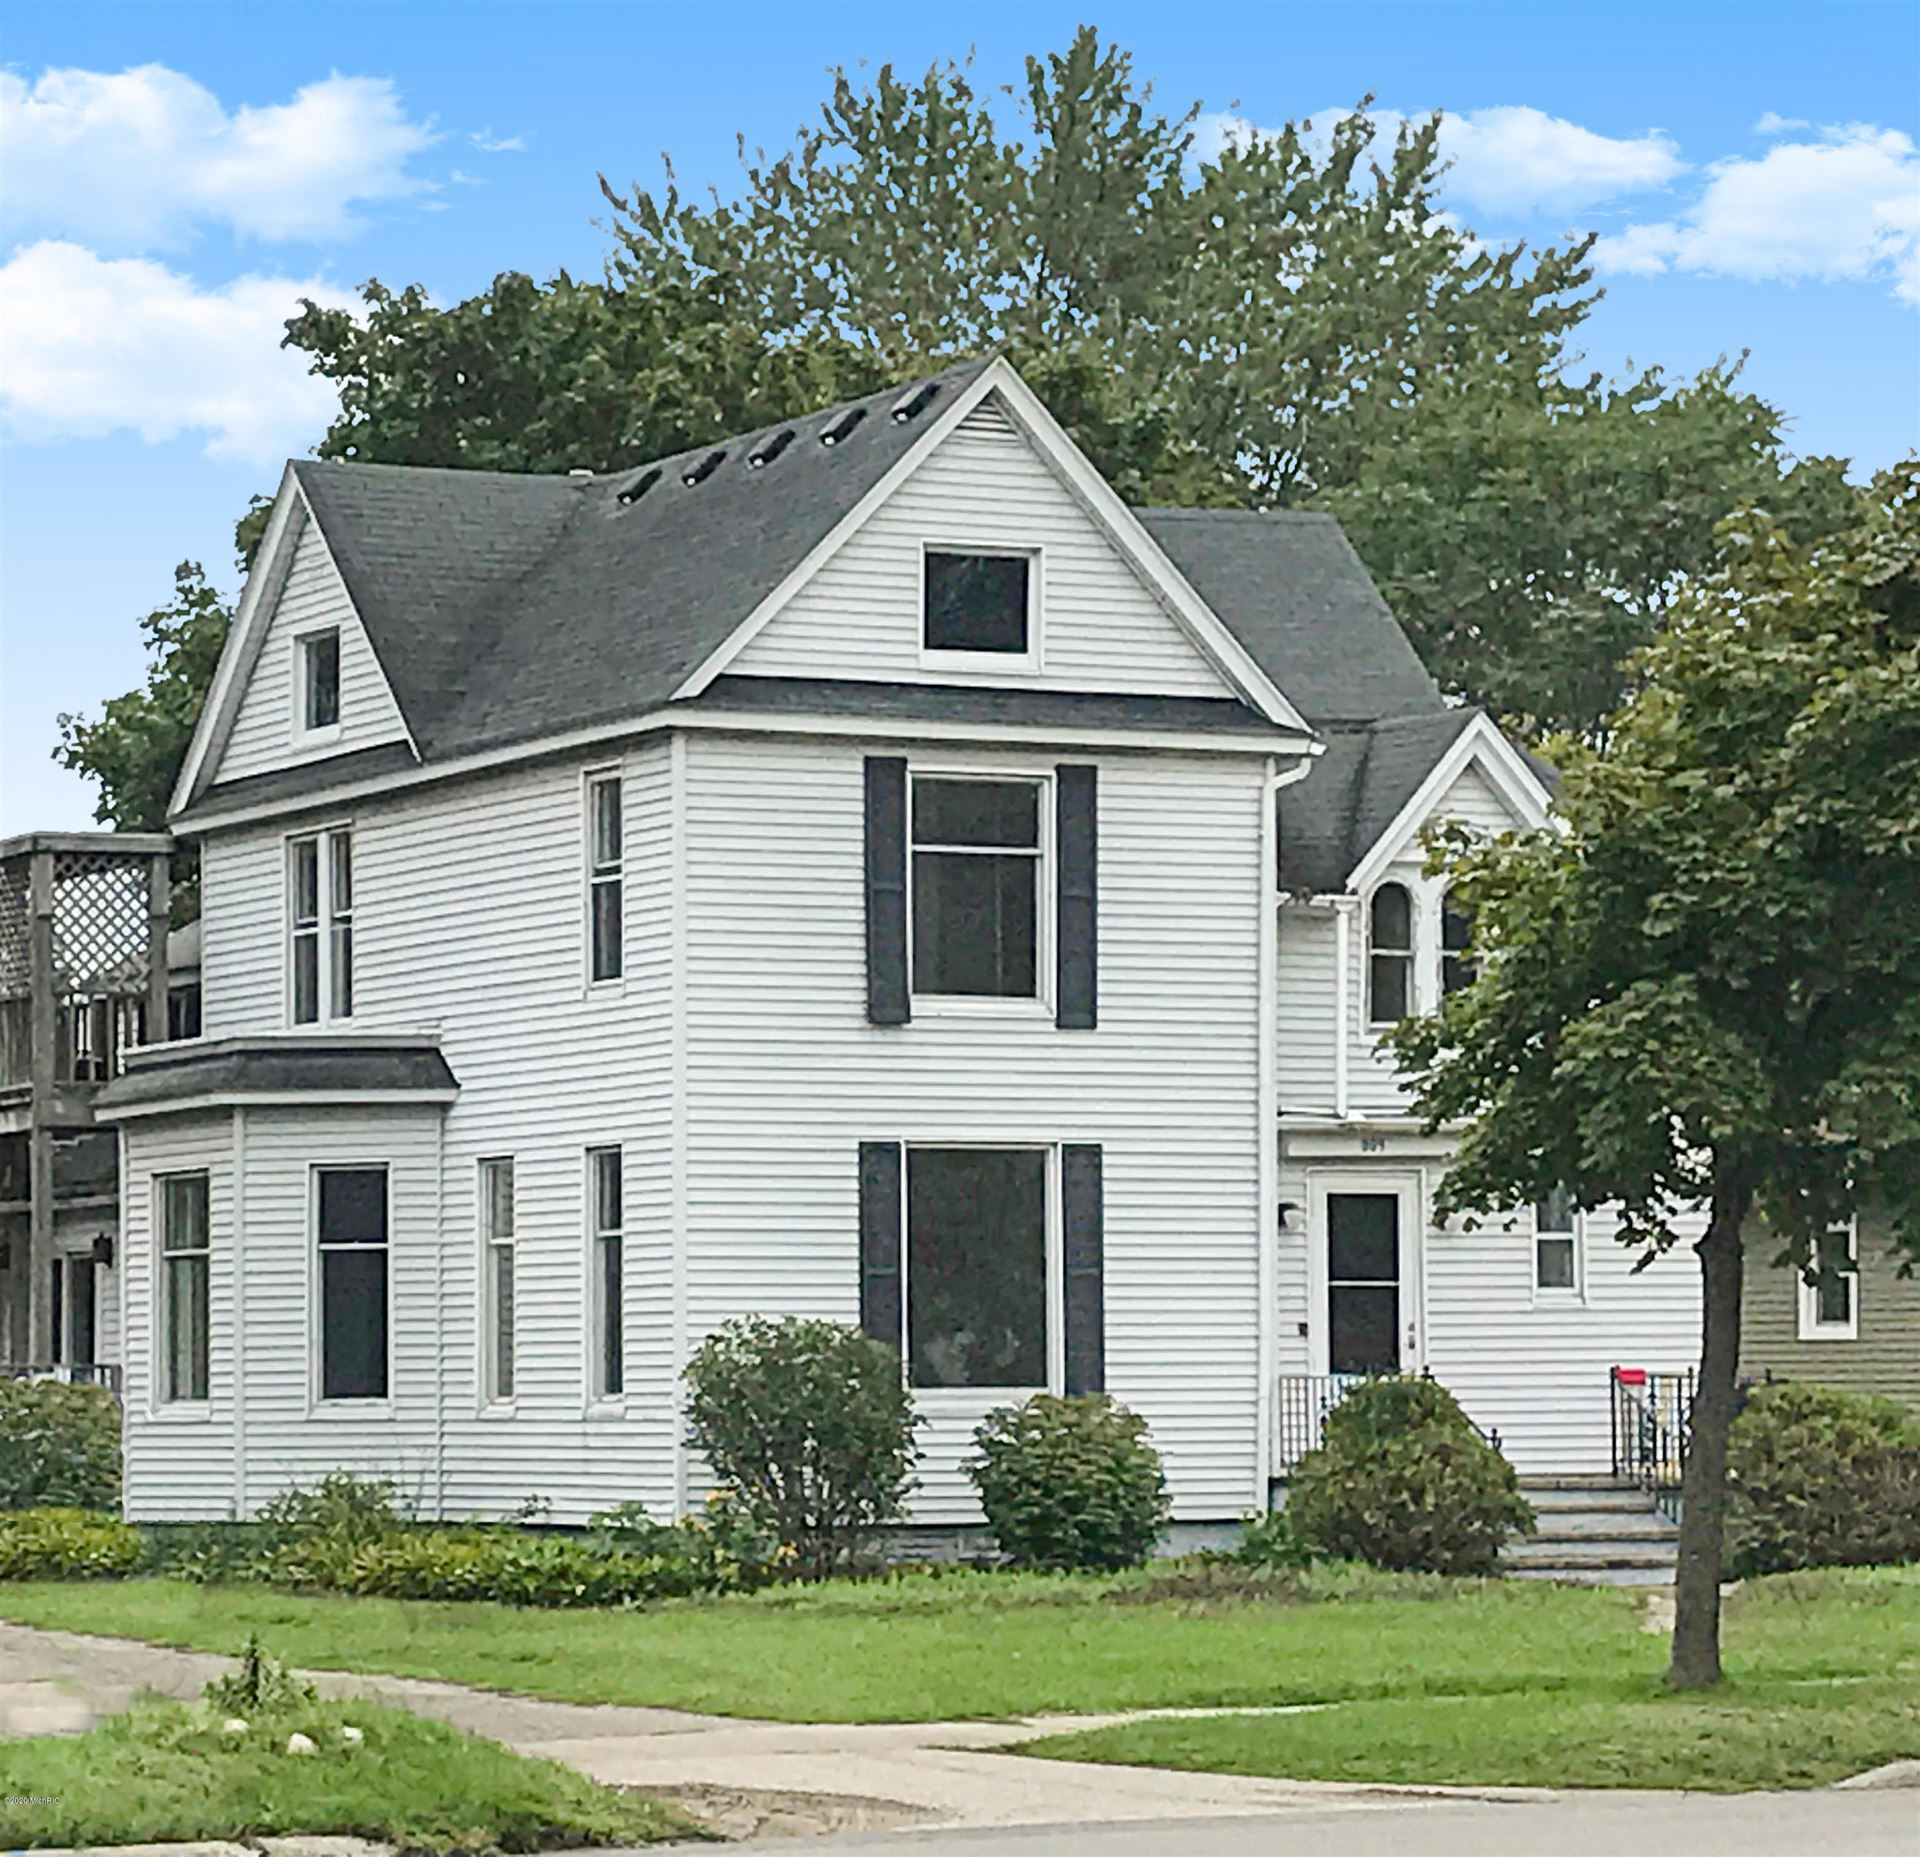 809 E Ludington Avenue, Ludington, MI 49431 - MLS#: 20025349